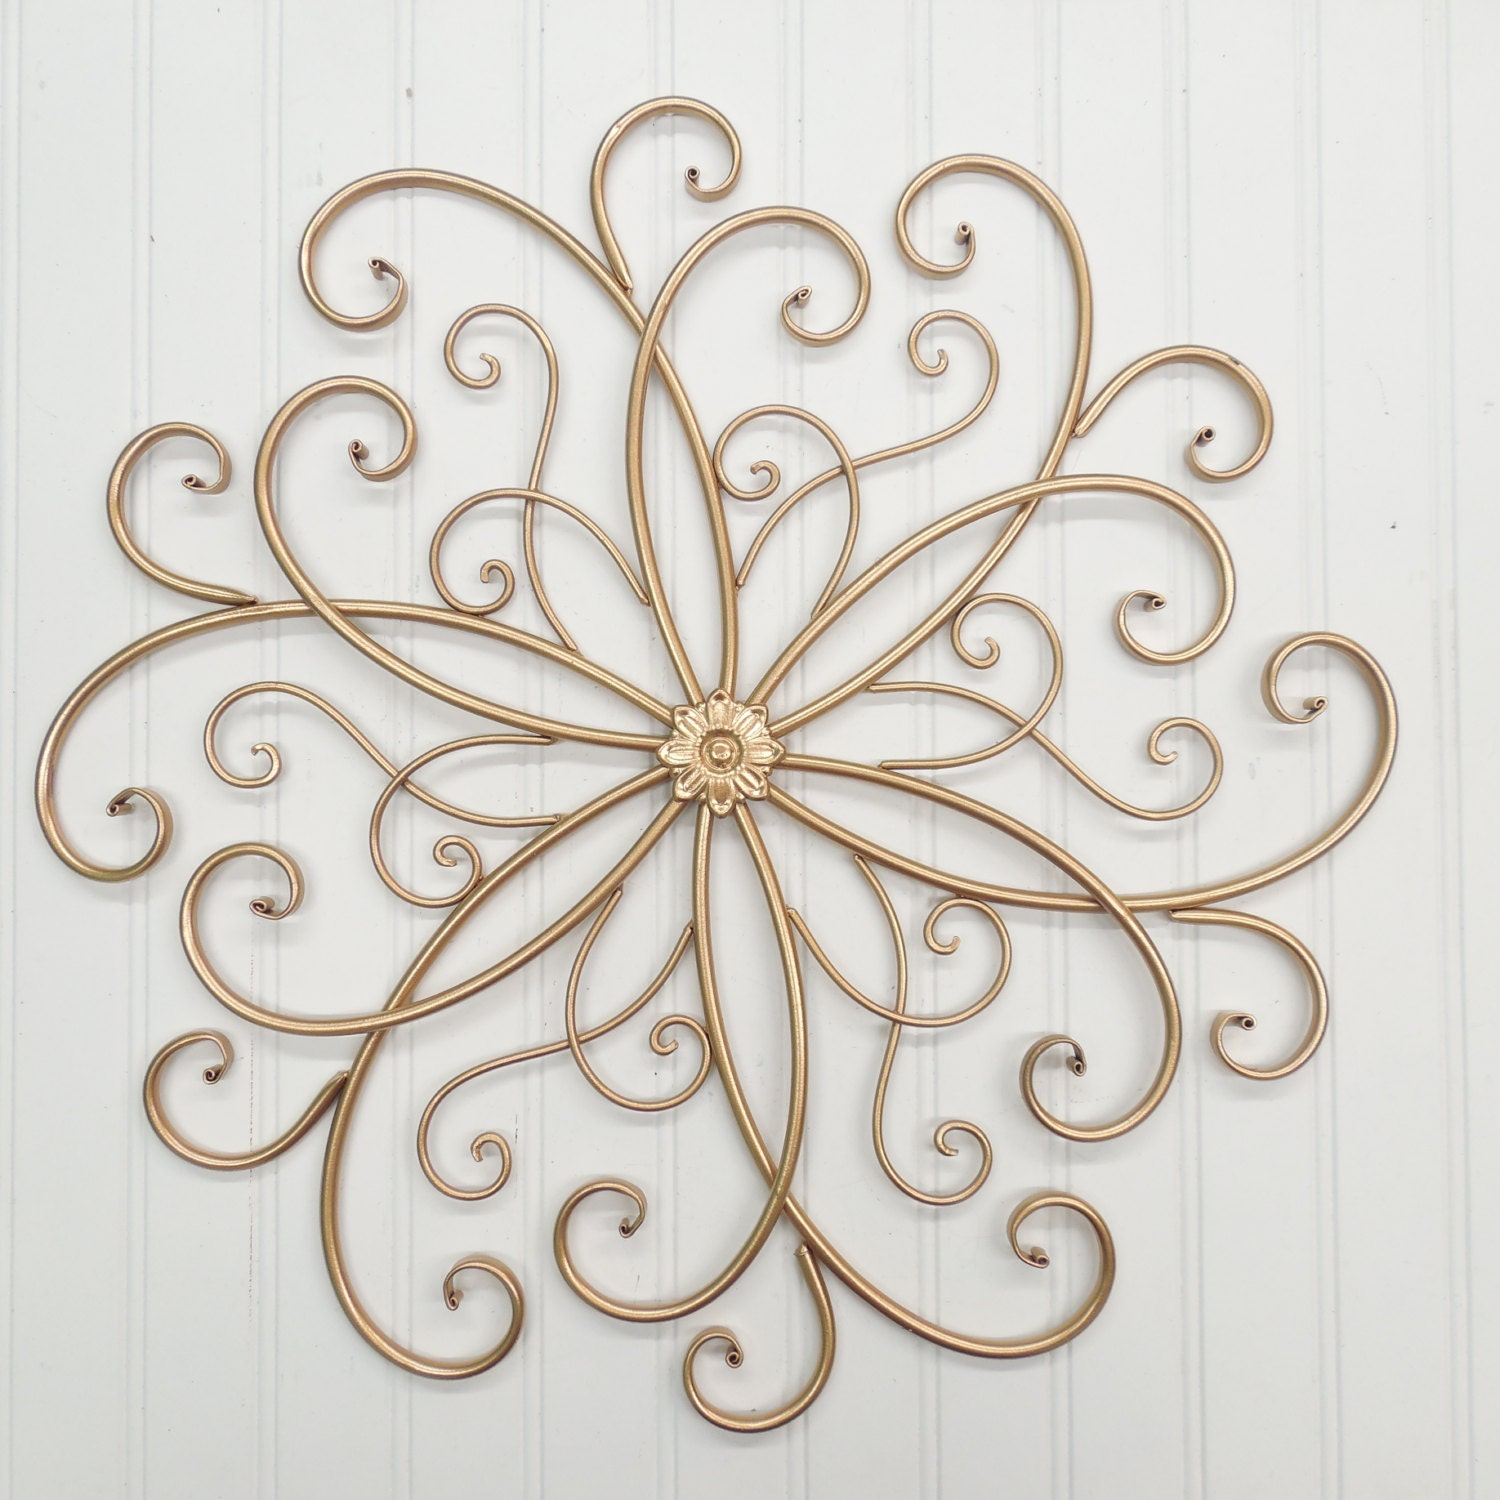 Wall Decoration With Colour : Wall decor colors gold metal sslid wrought